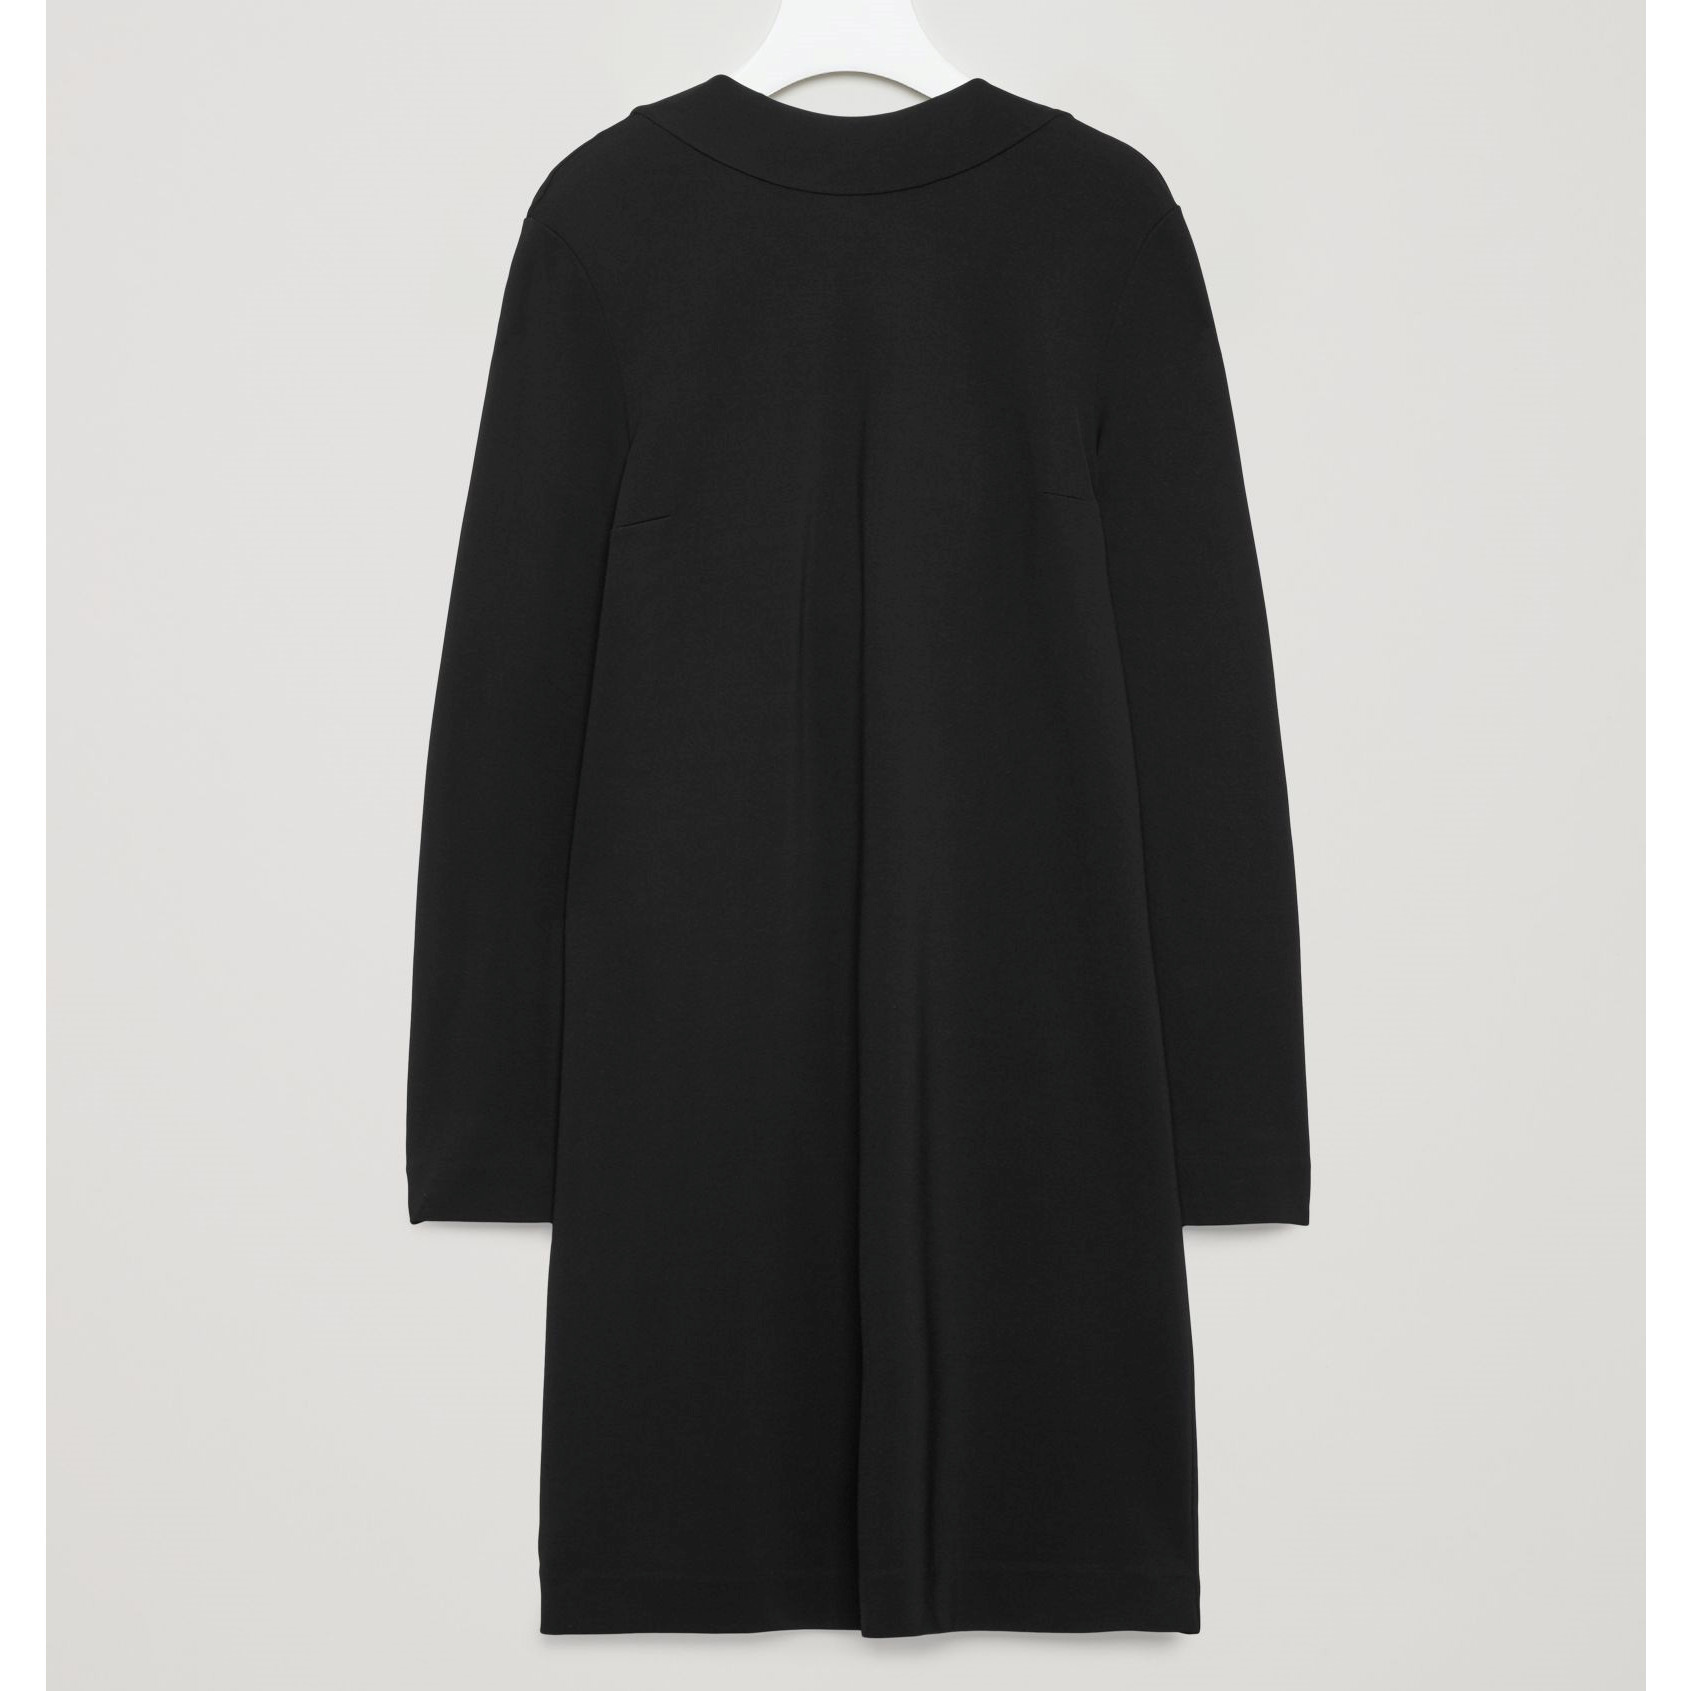 COS☆DRESS WITH DRAPED BACK  / black